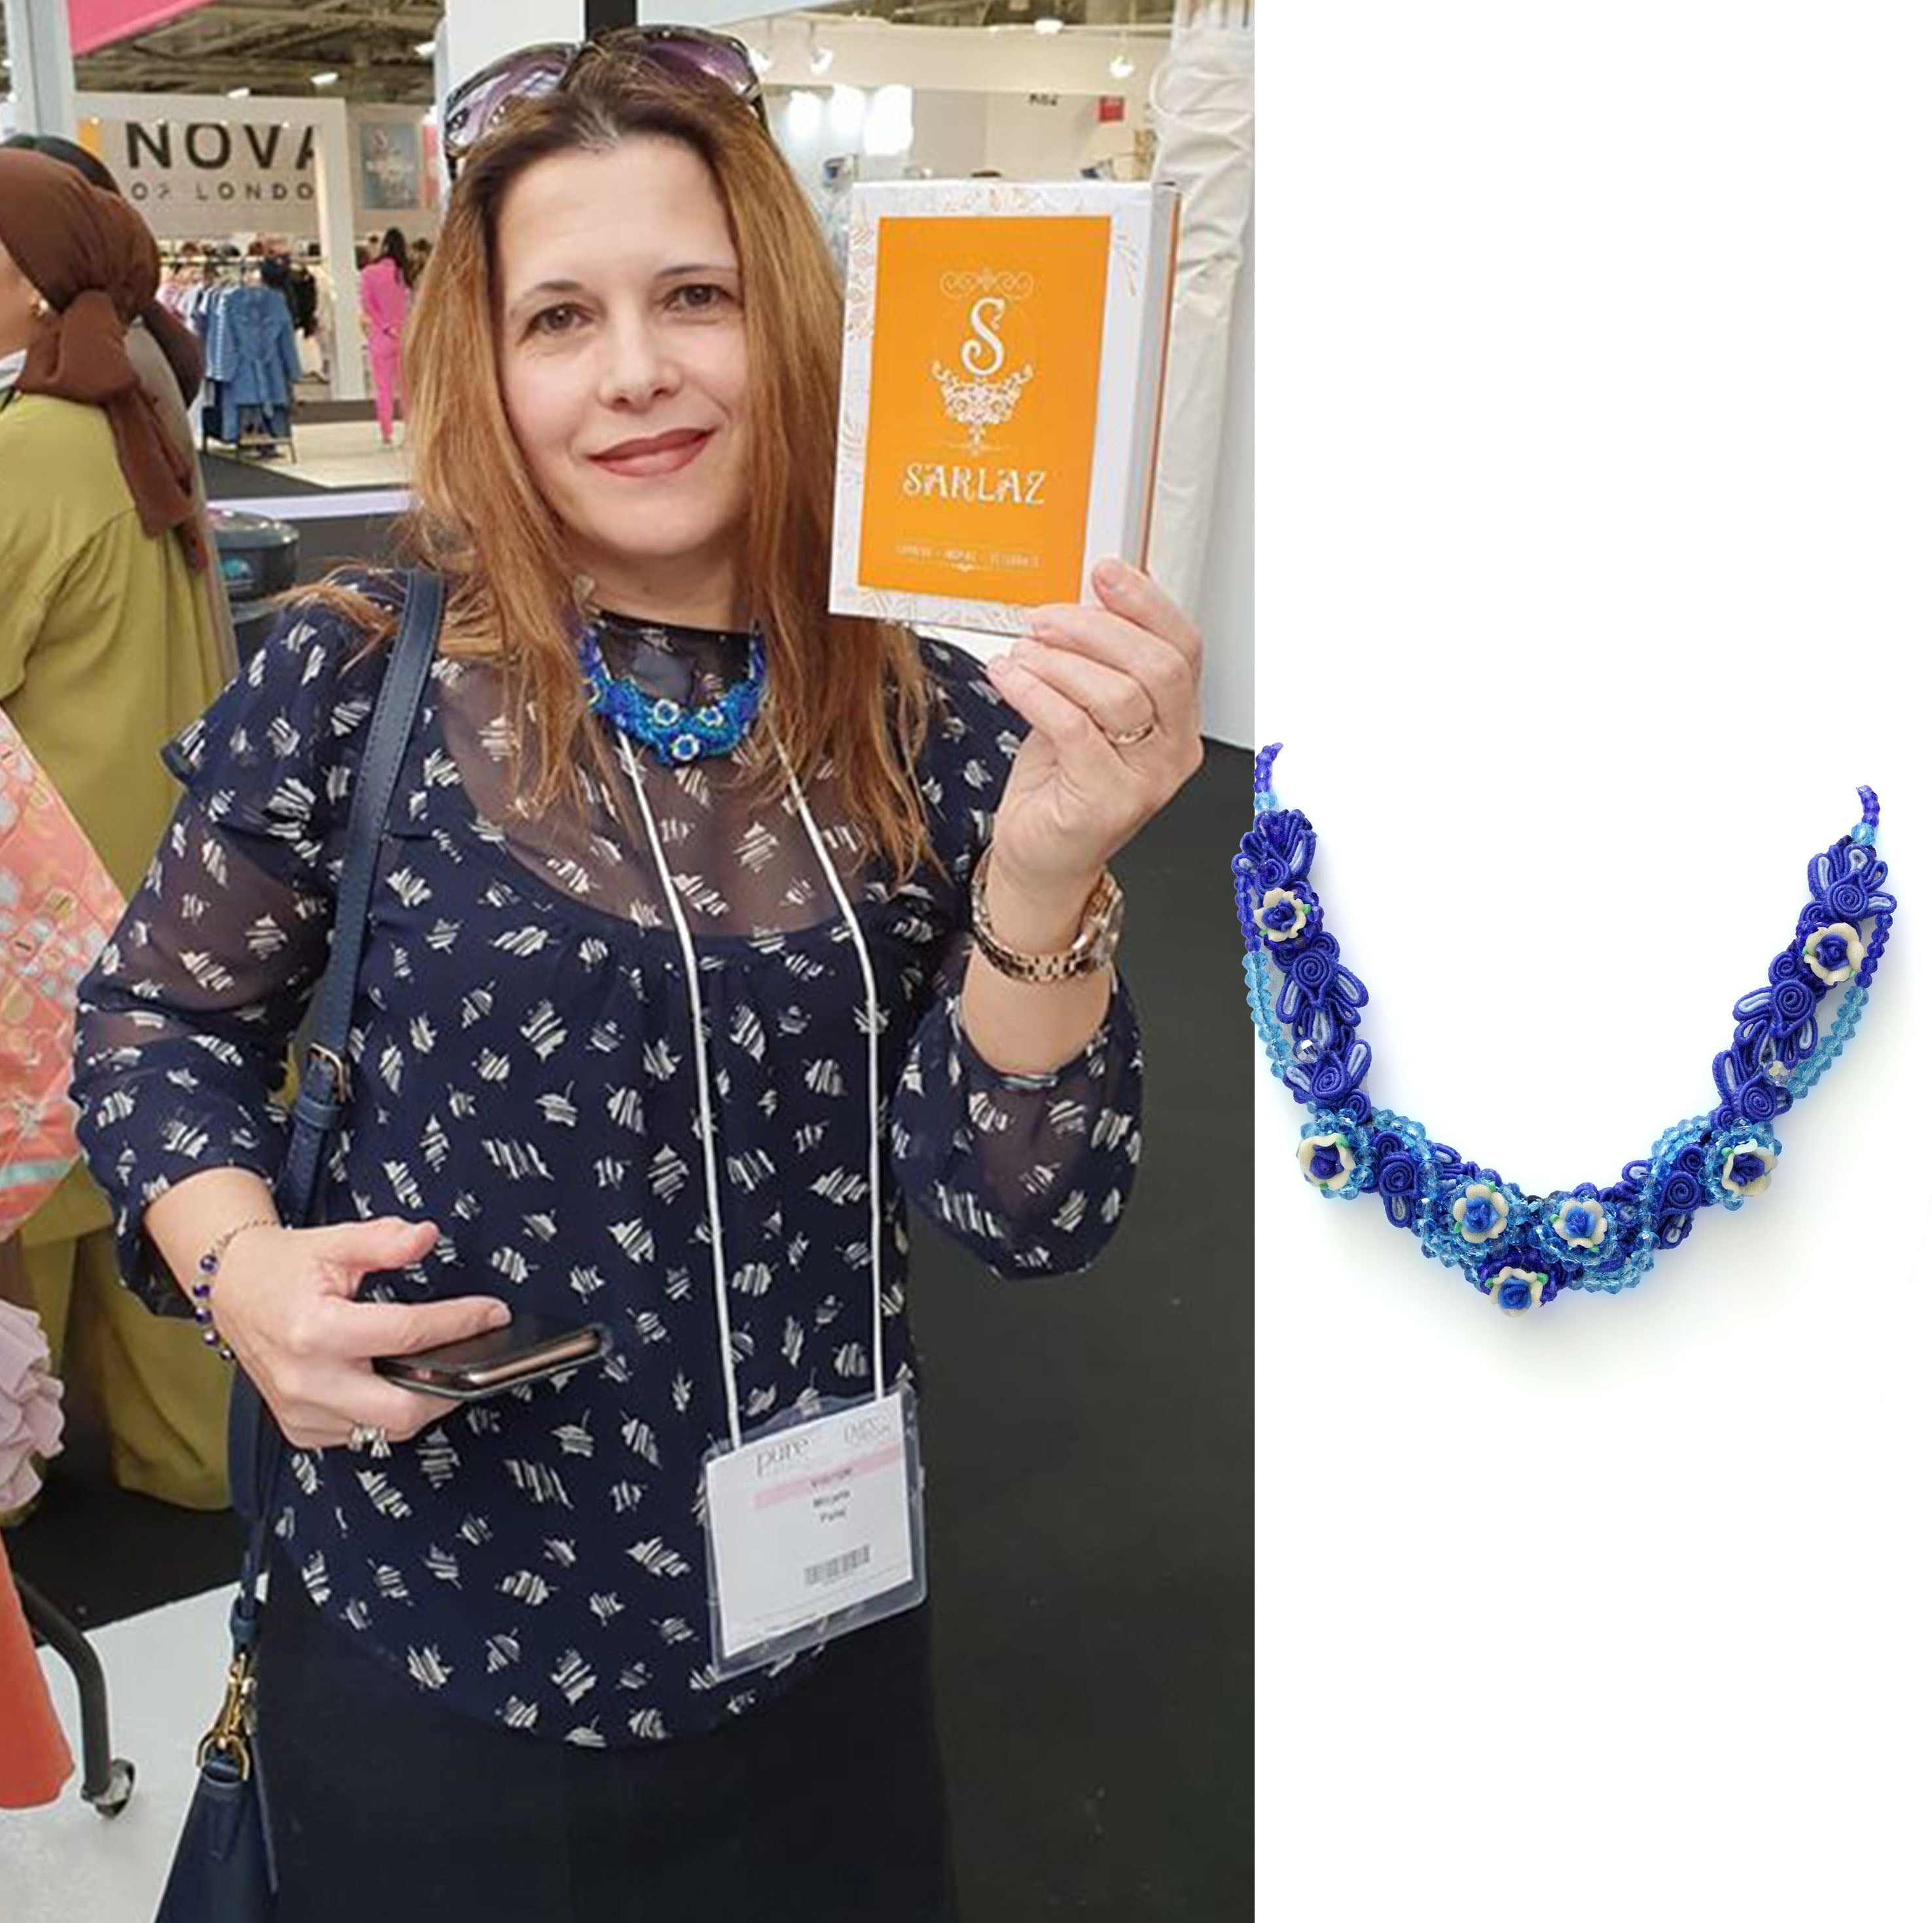 Blue flower necklace by Sarlaz